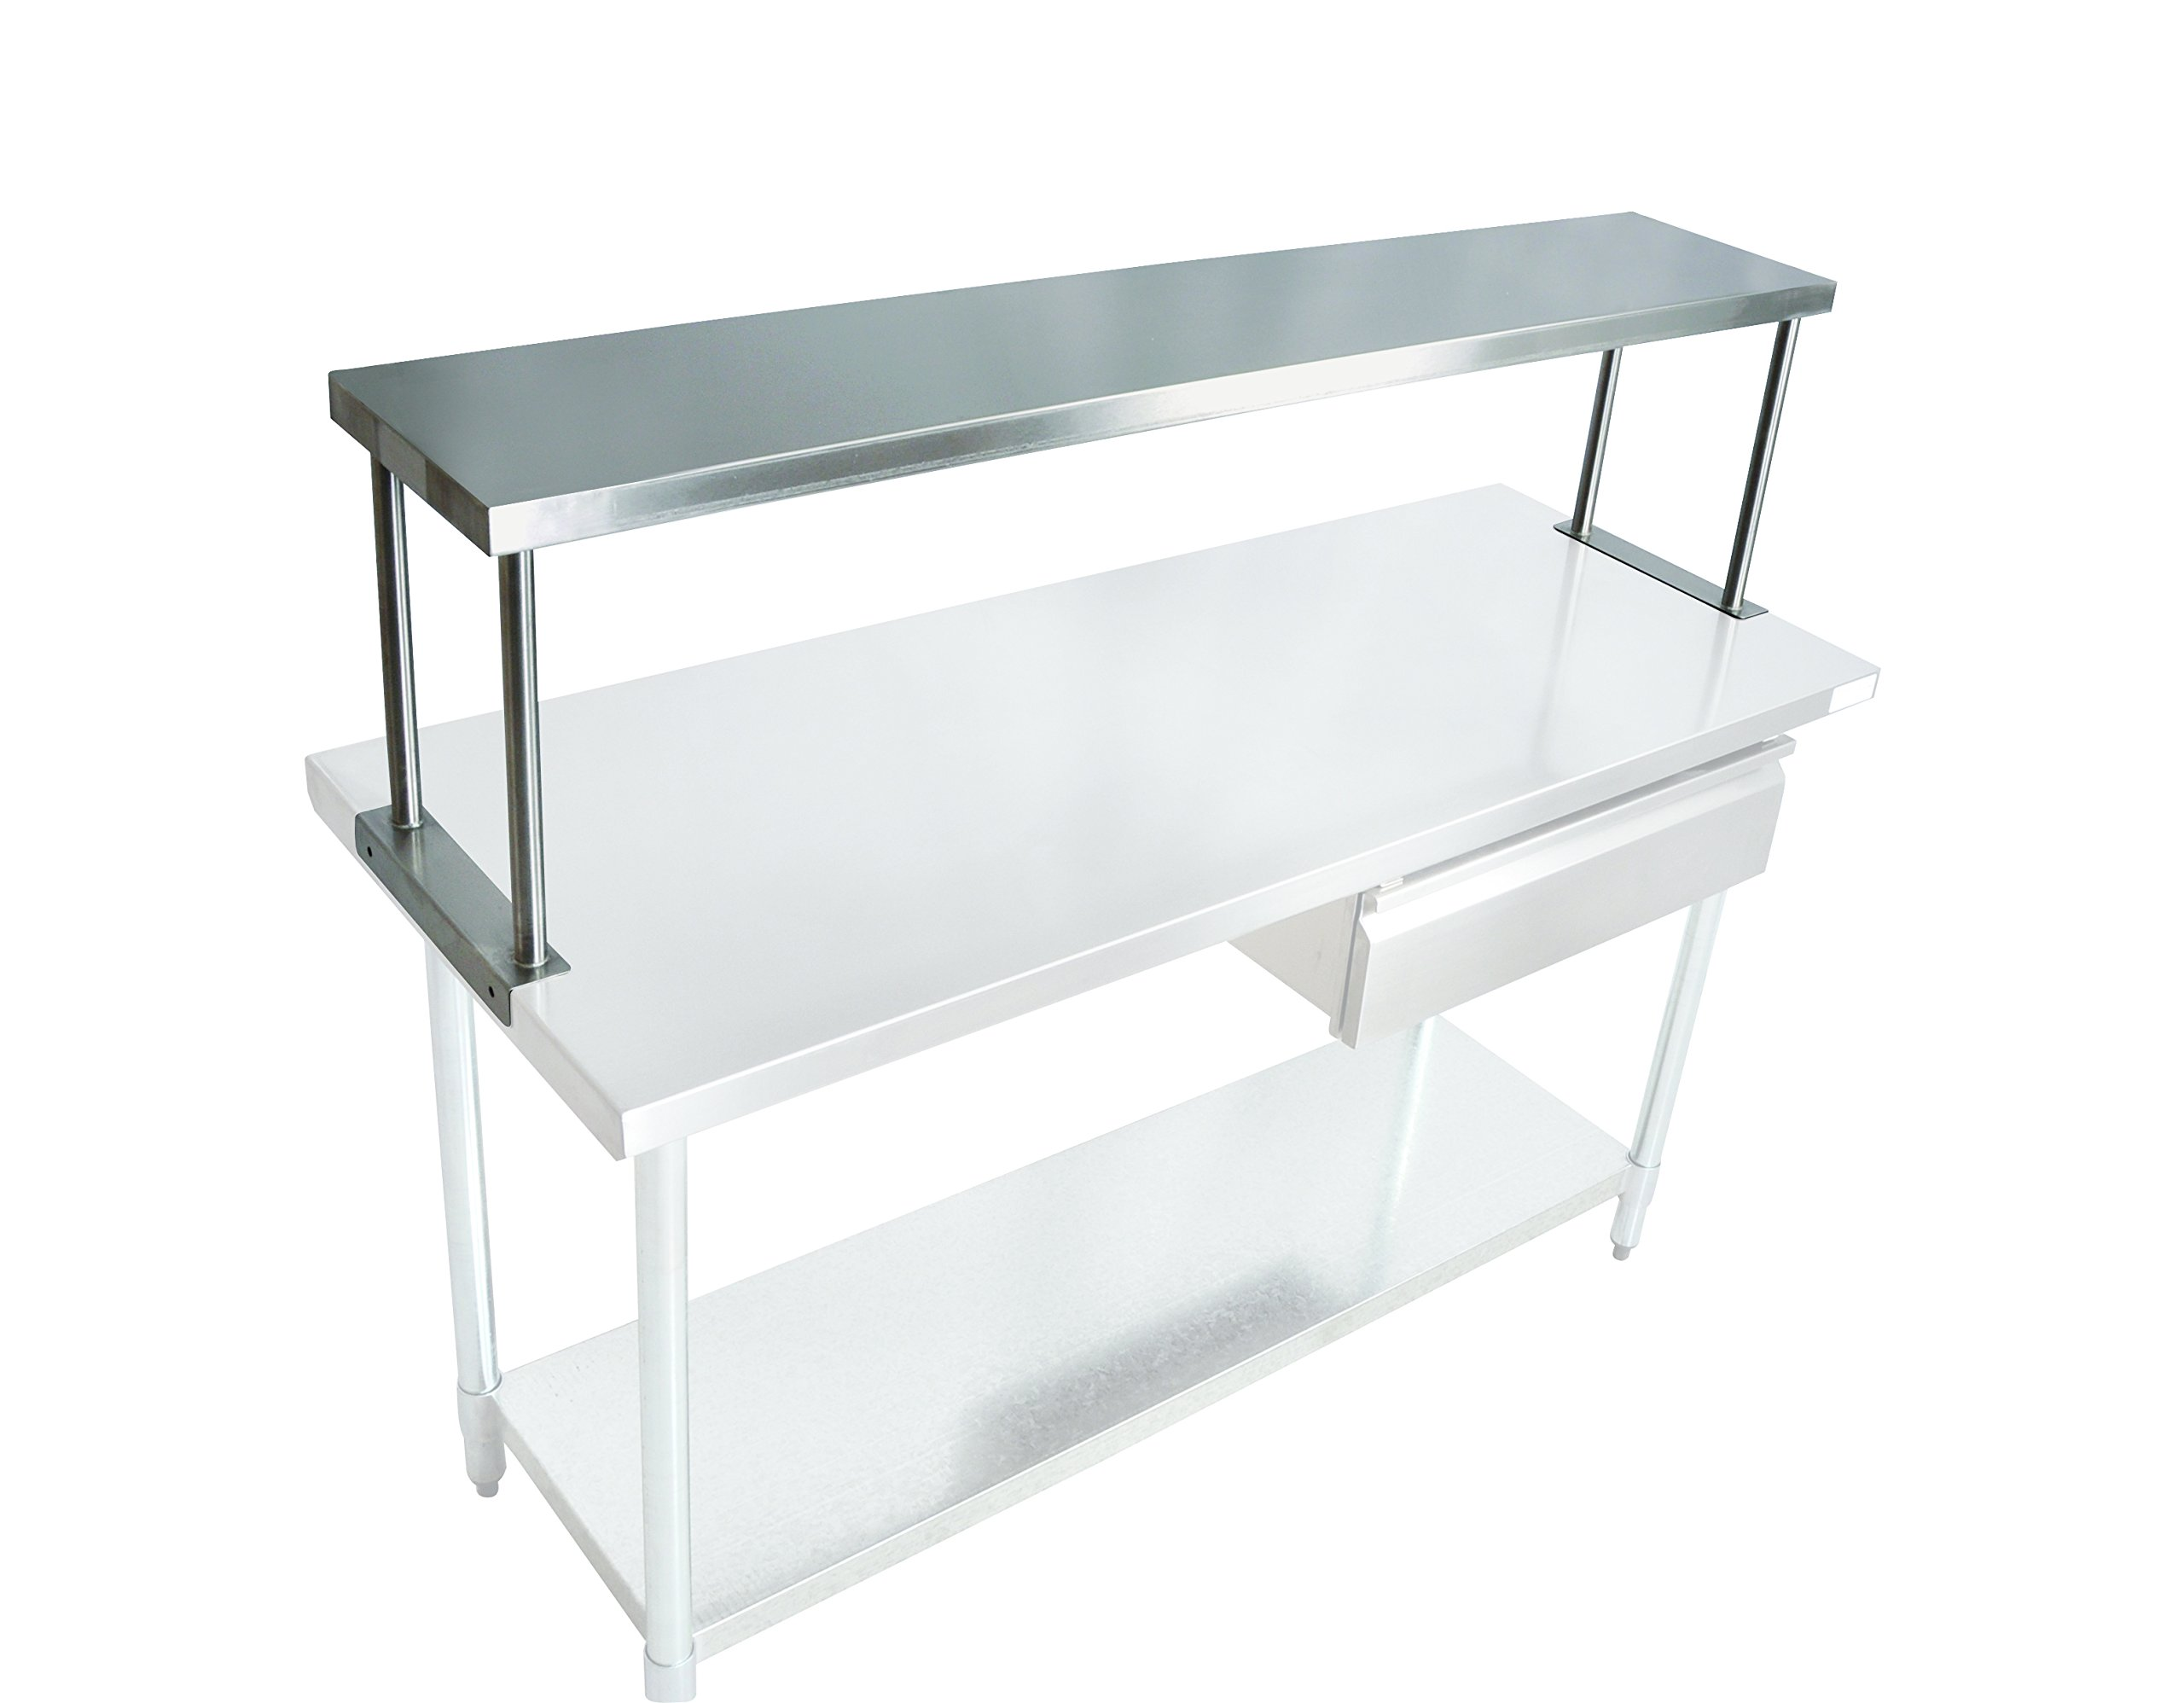 John Boos OS-ES-1248 Stainless Steel 430 Economy Overshelf, Single, 48'' Length x 12'' Width